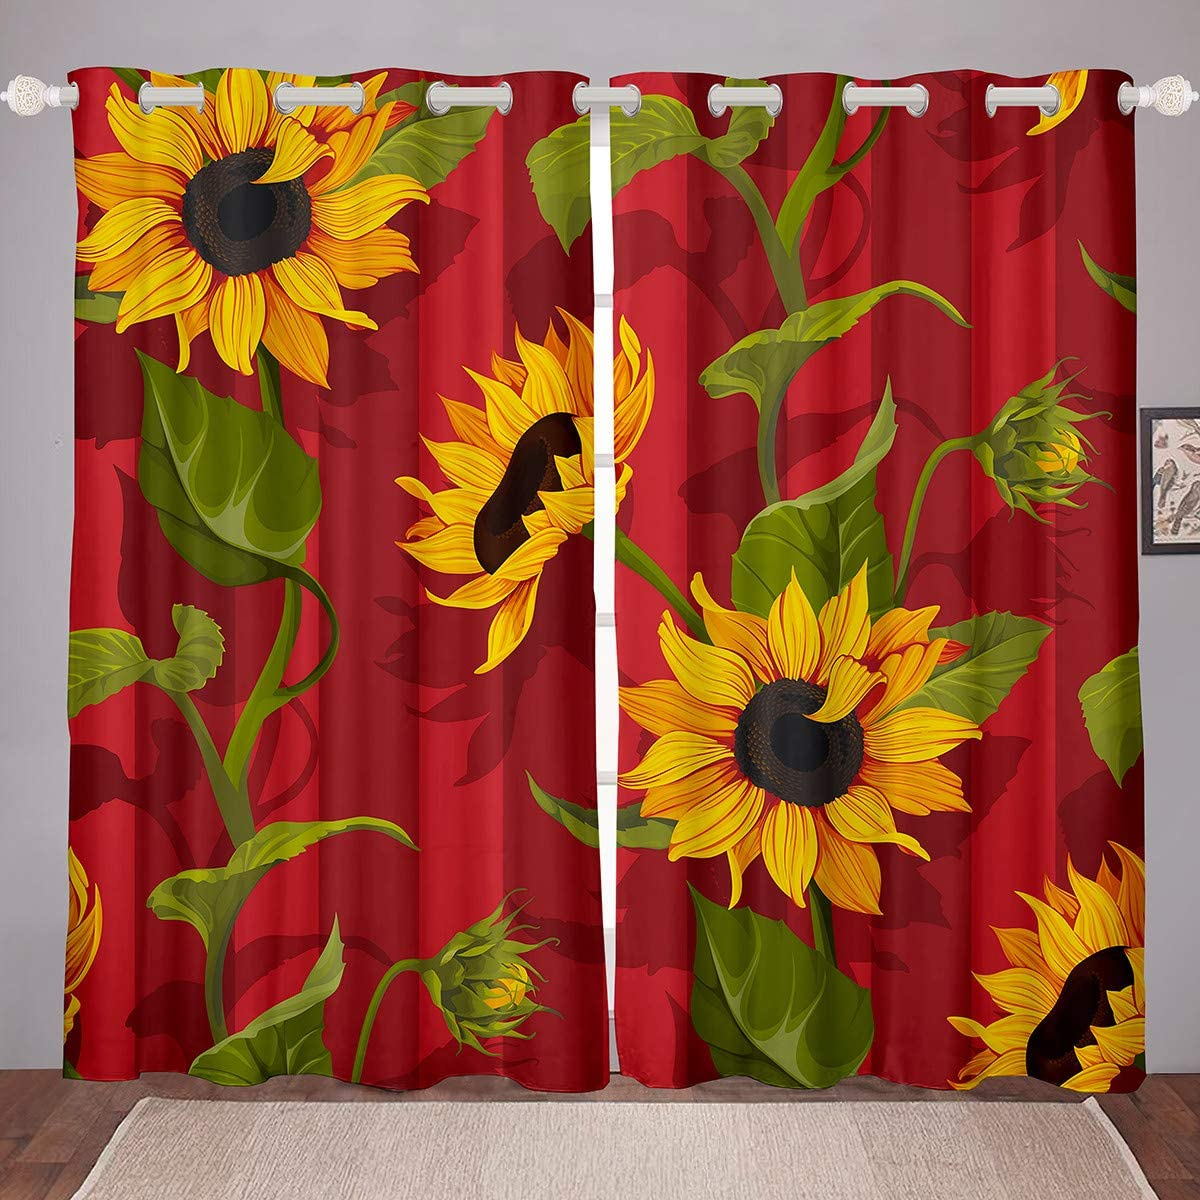 Amazon Com Sunflower Burgundy Curtains Window Yellow Flower Sun Curtain Panel Children Adult Wall Artwork Room Grommet Drapes For Bedroom Living Dining 2 Panels 84wx84l Home Kitchen